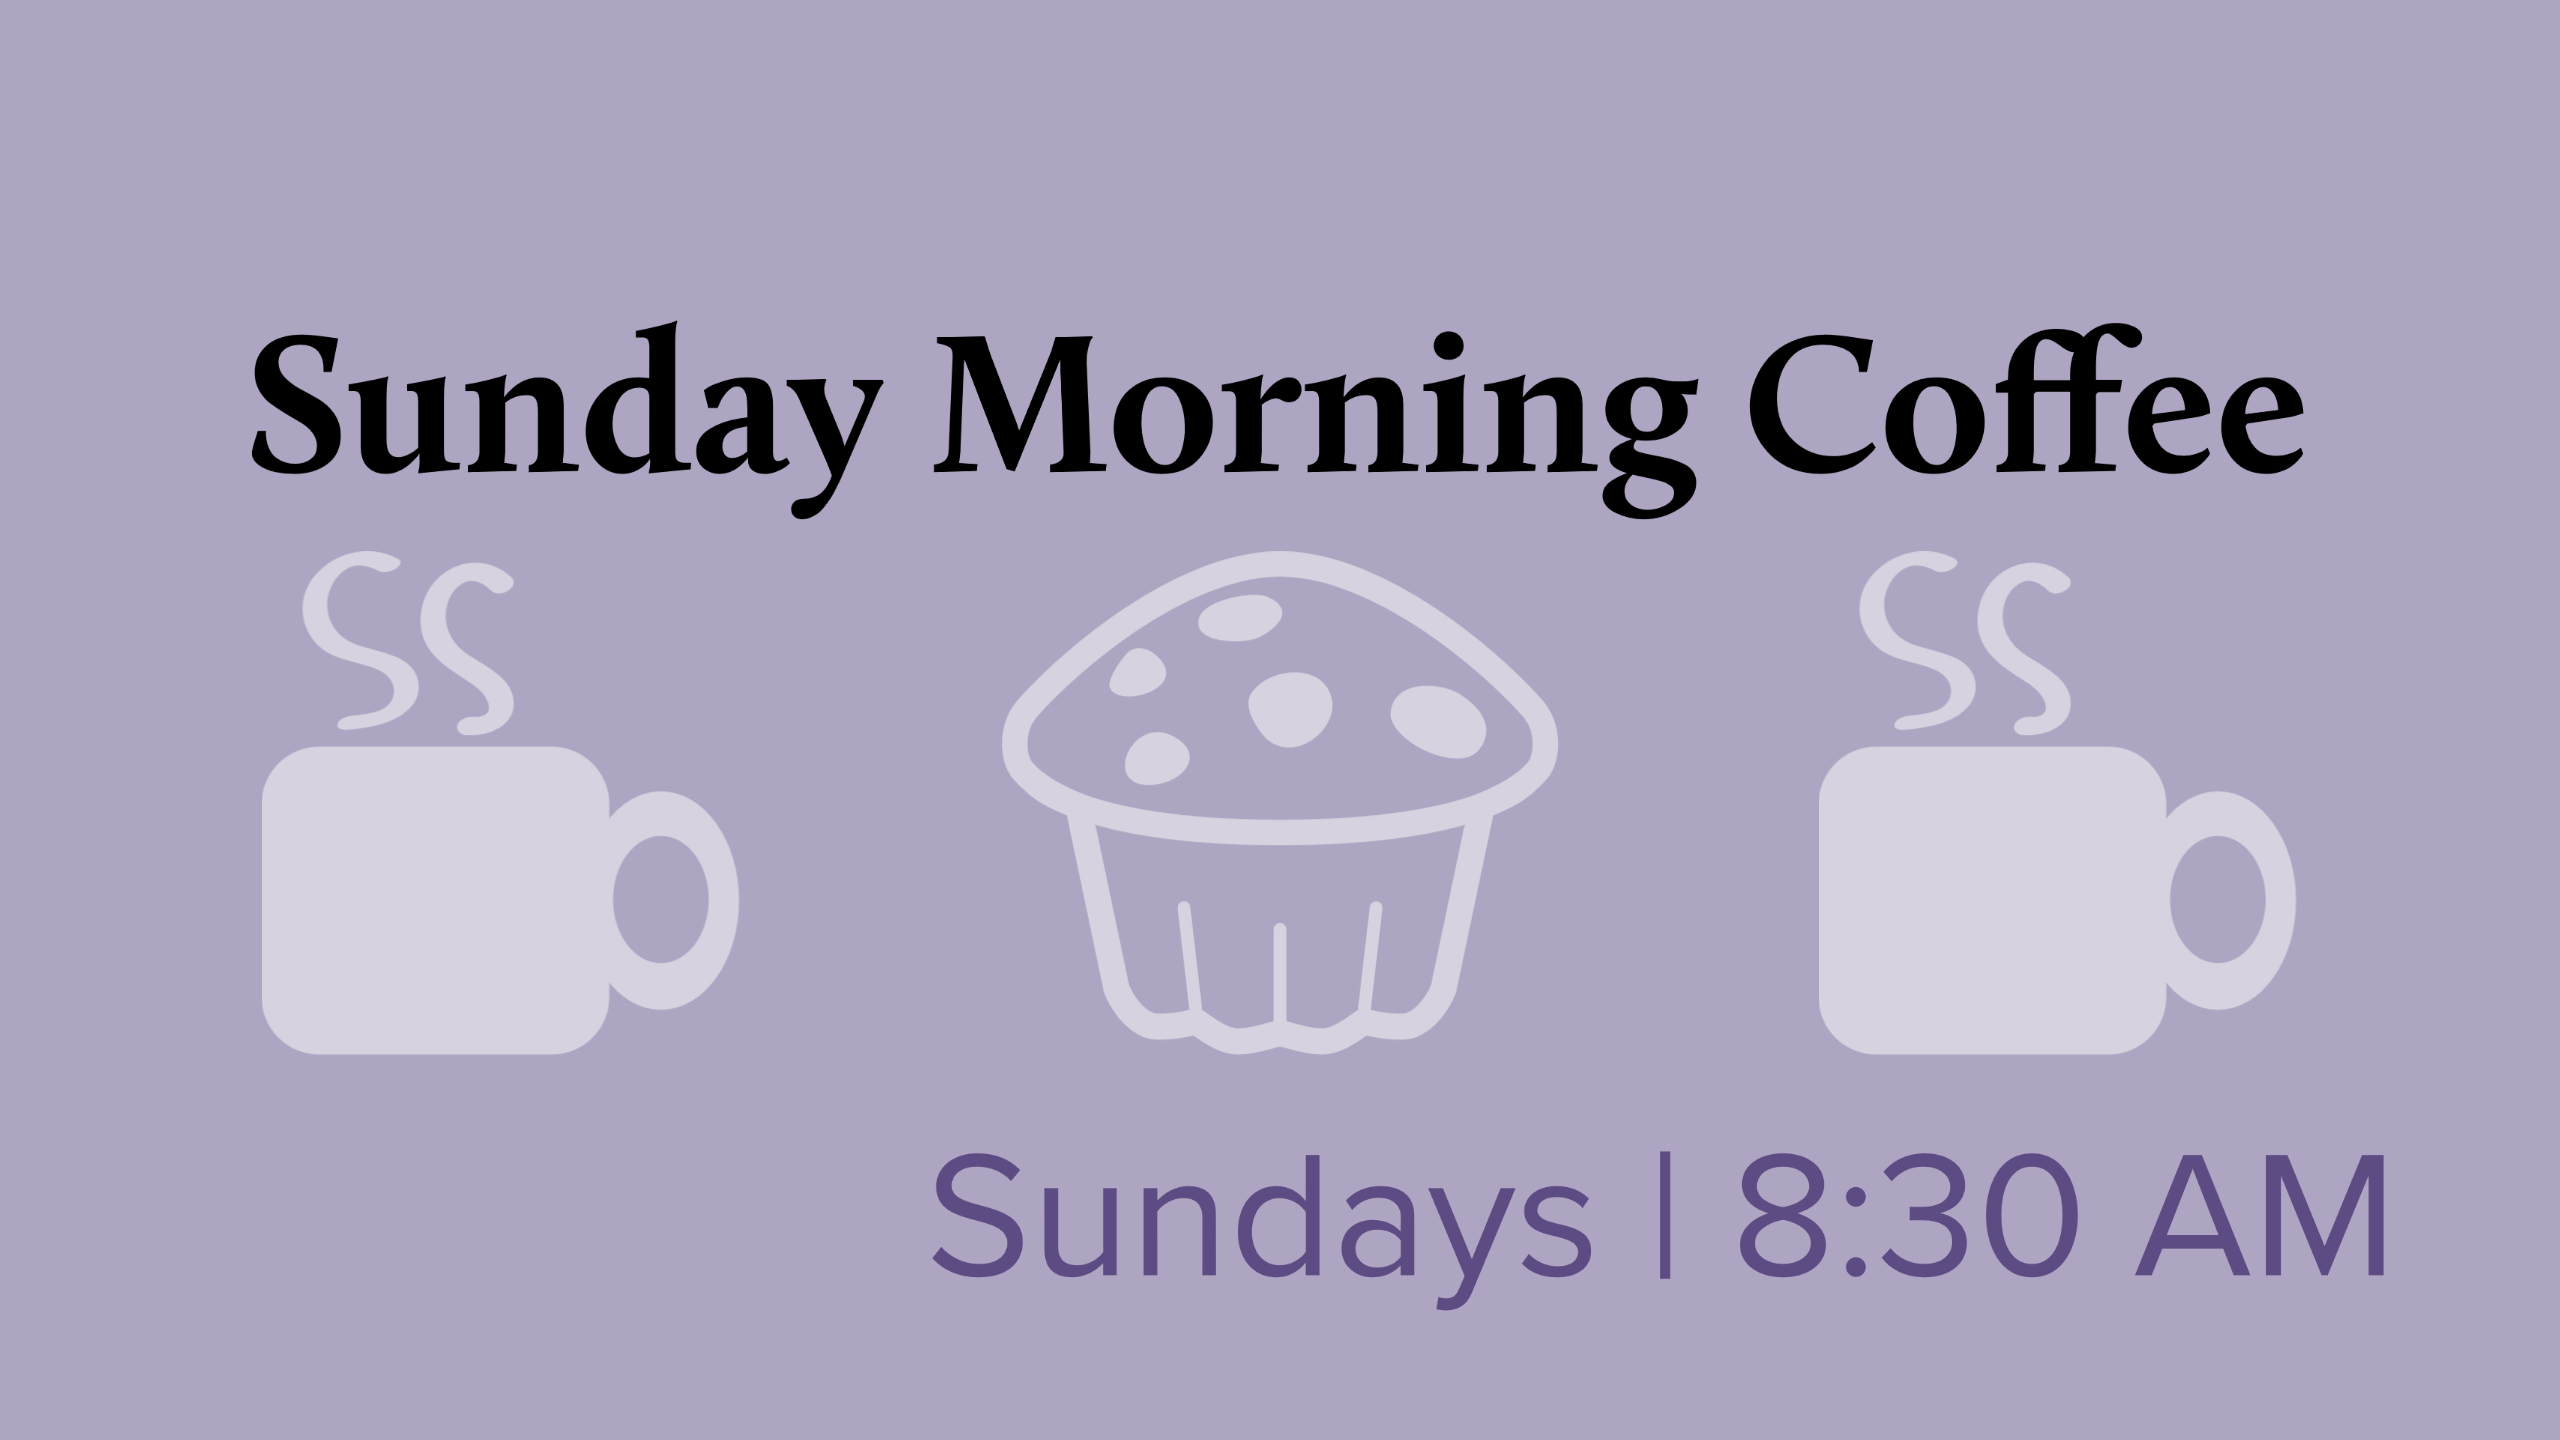 """purple icons of two cups of steaming coffee and a muffin with the text """"Sunday Morning Coffe Sundays 8:30 AM"""""""